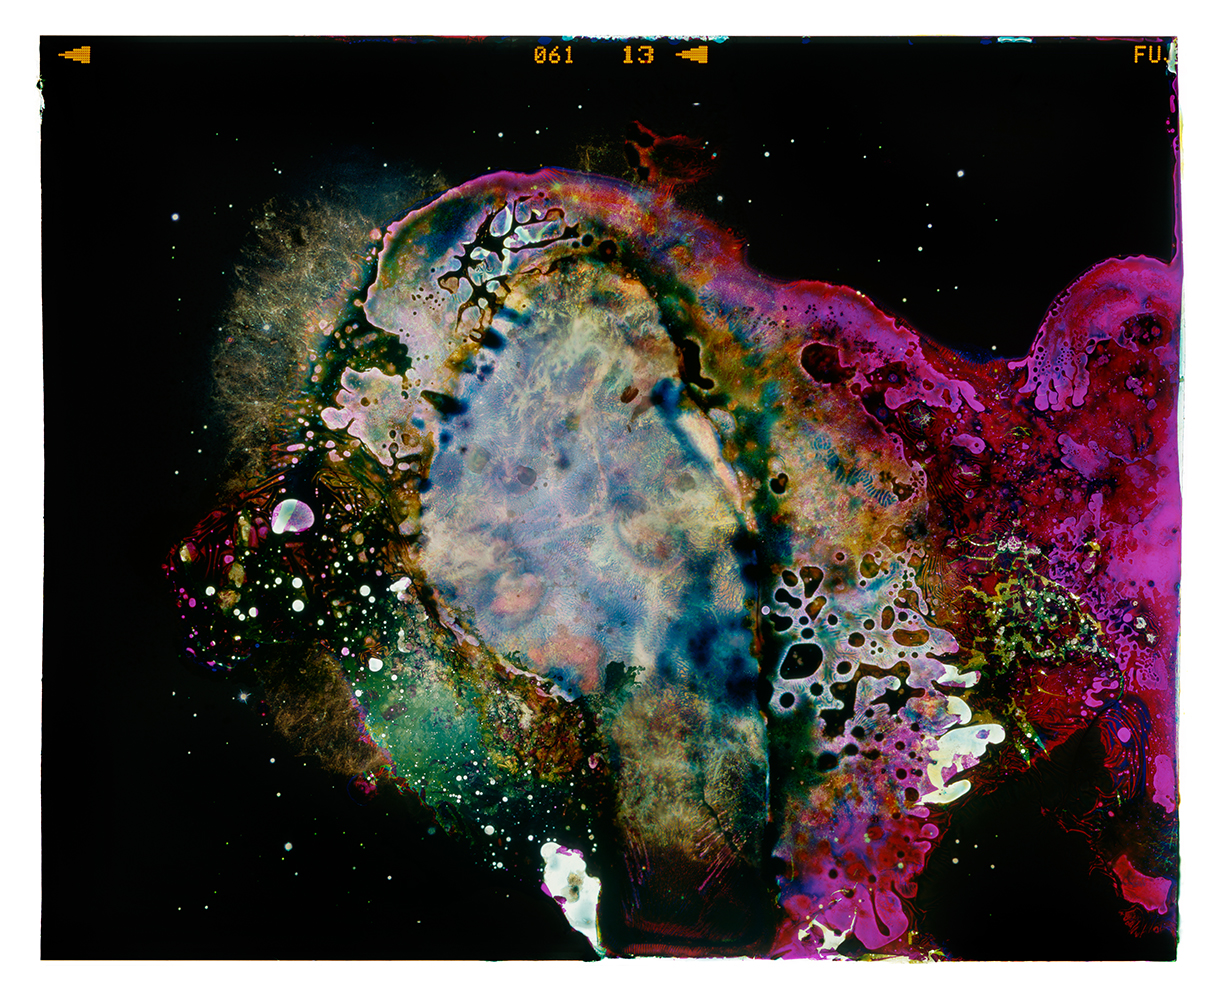 Archival Pigment Print of Bacteria Grown on Photographic Film